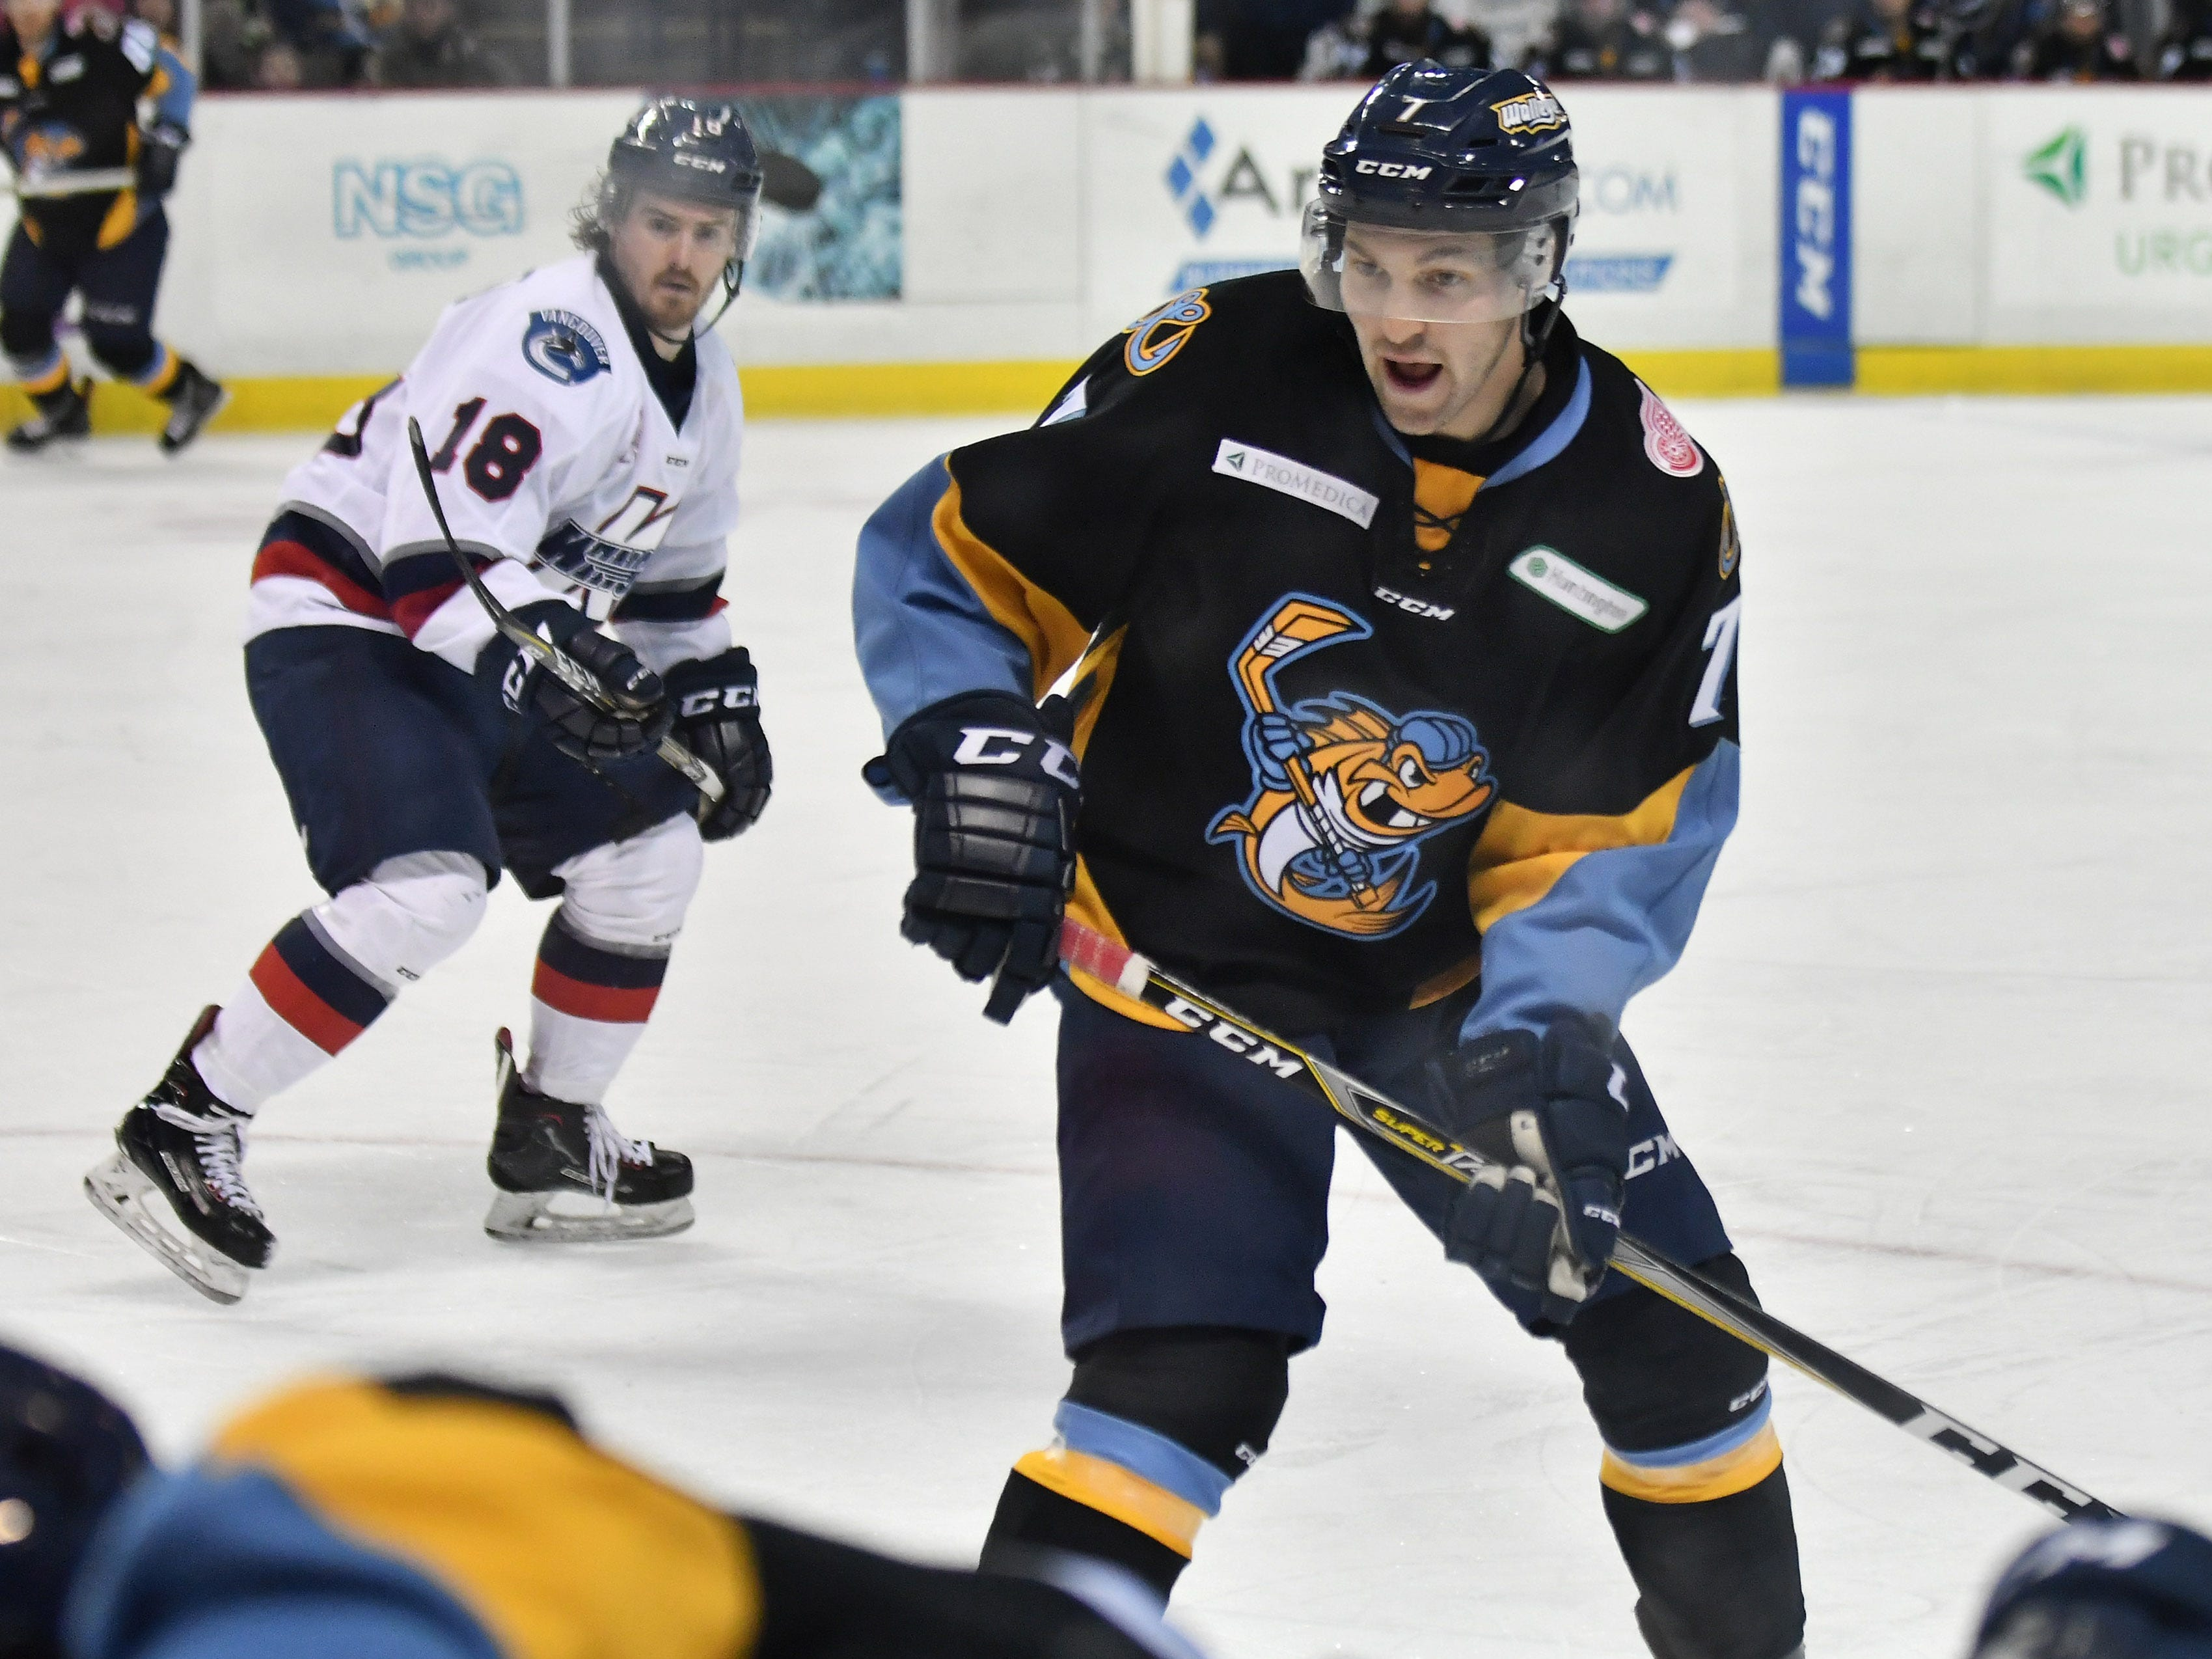 Toledo forward Tyler Spezia (7) comes over to the corner to assist a teammate in the second period.